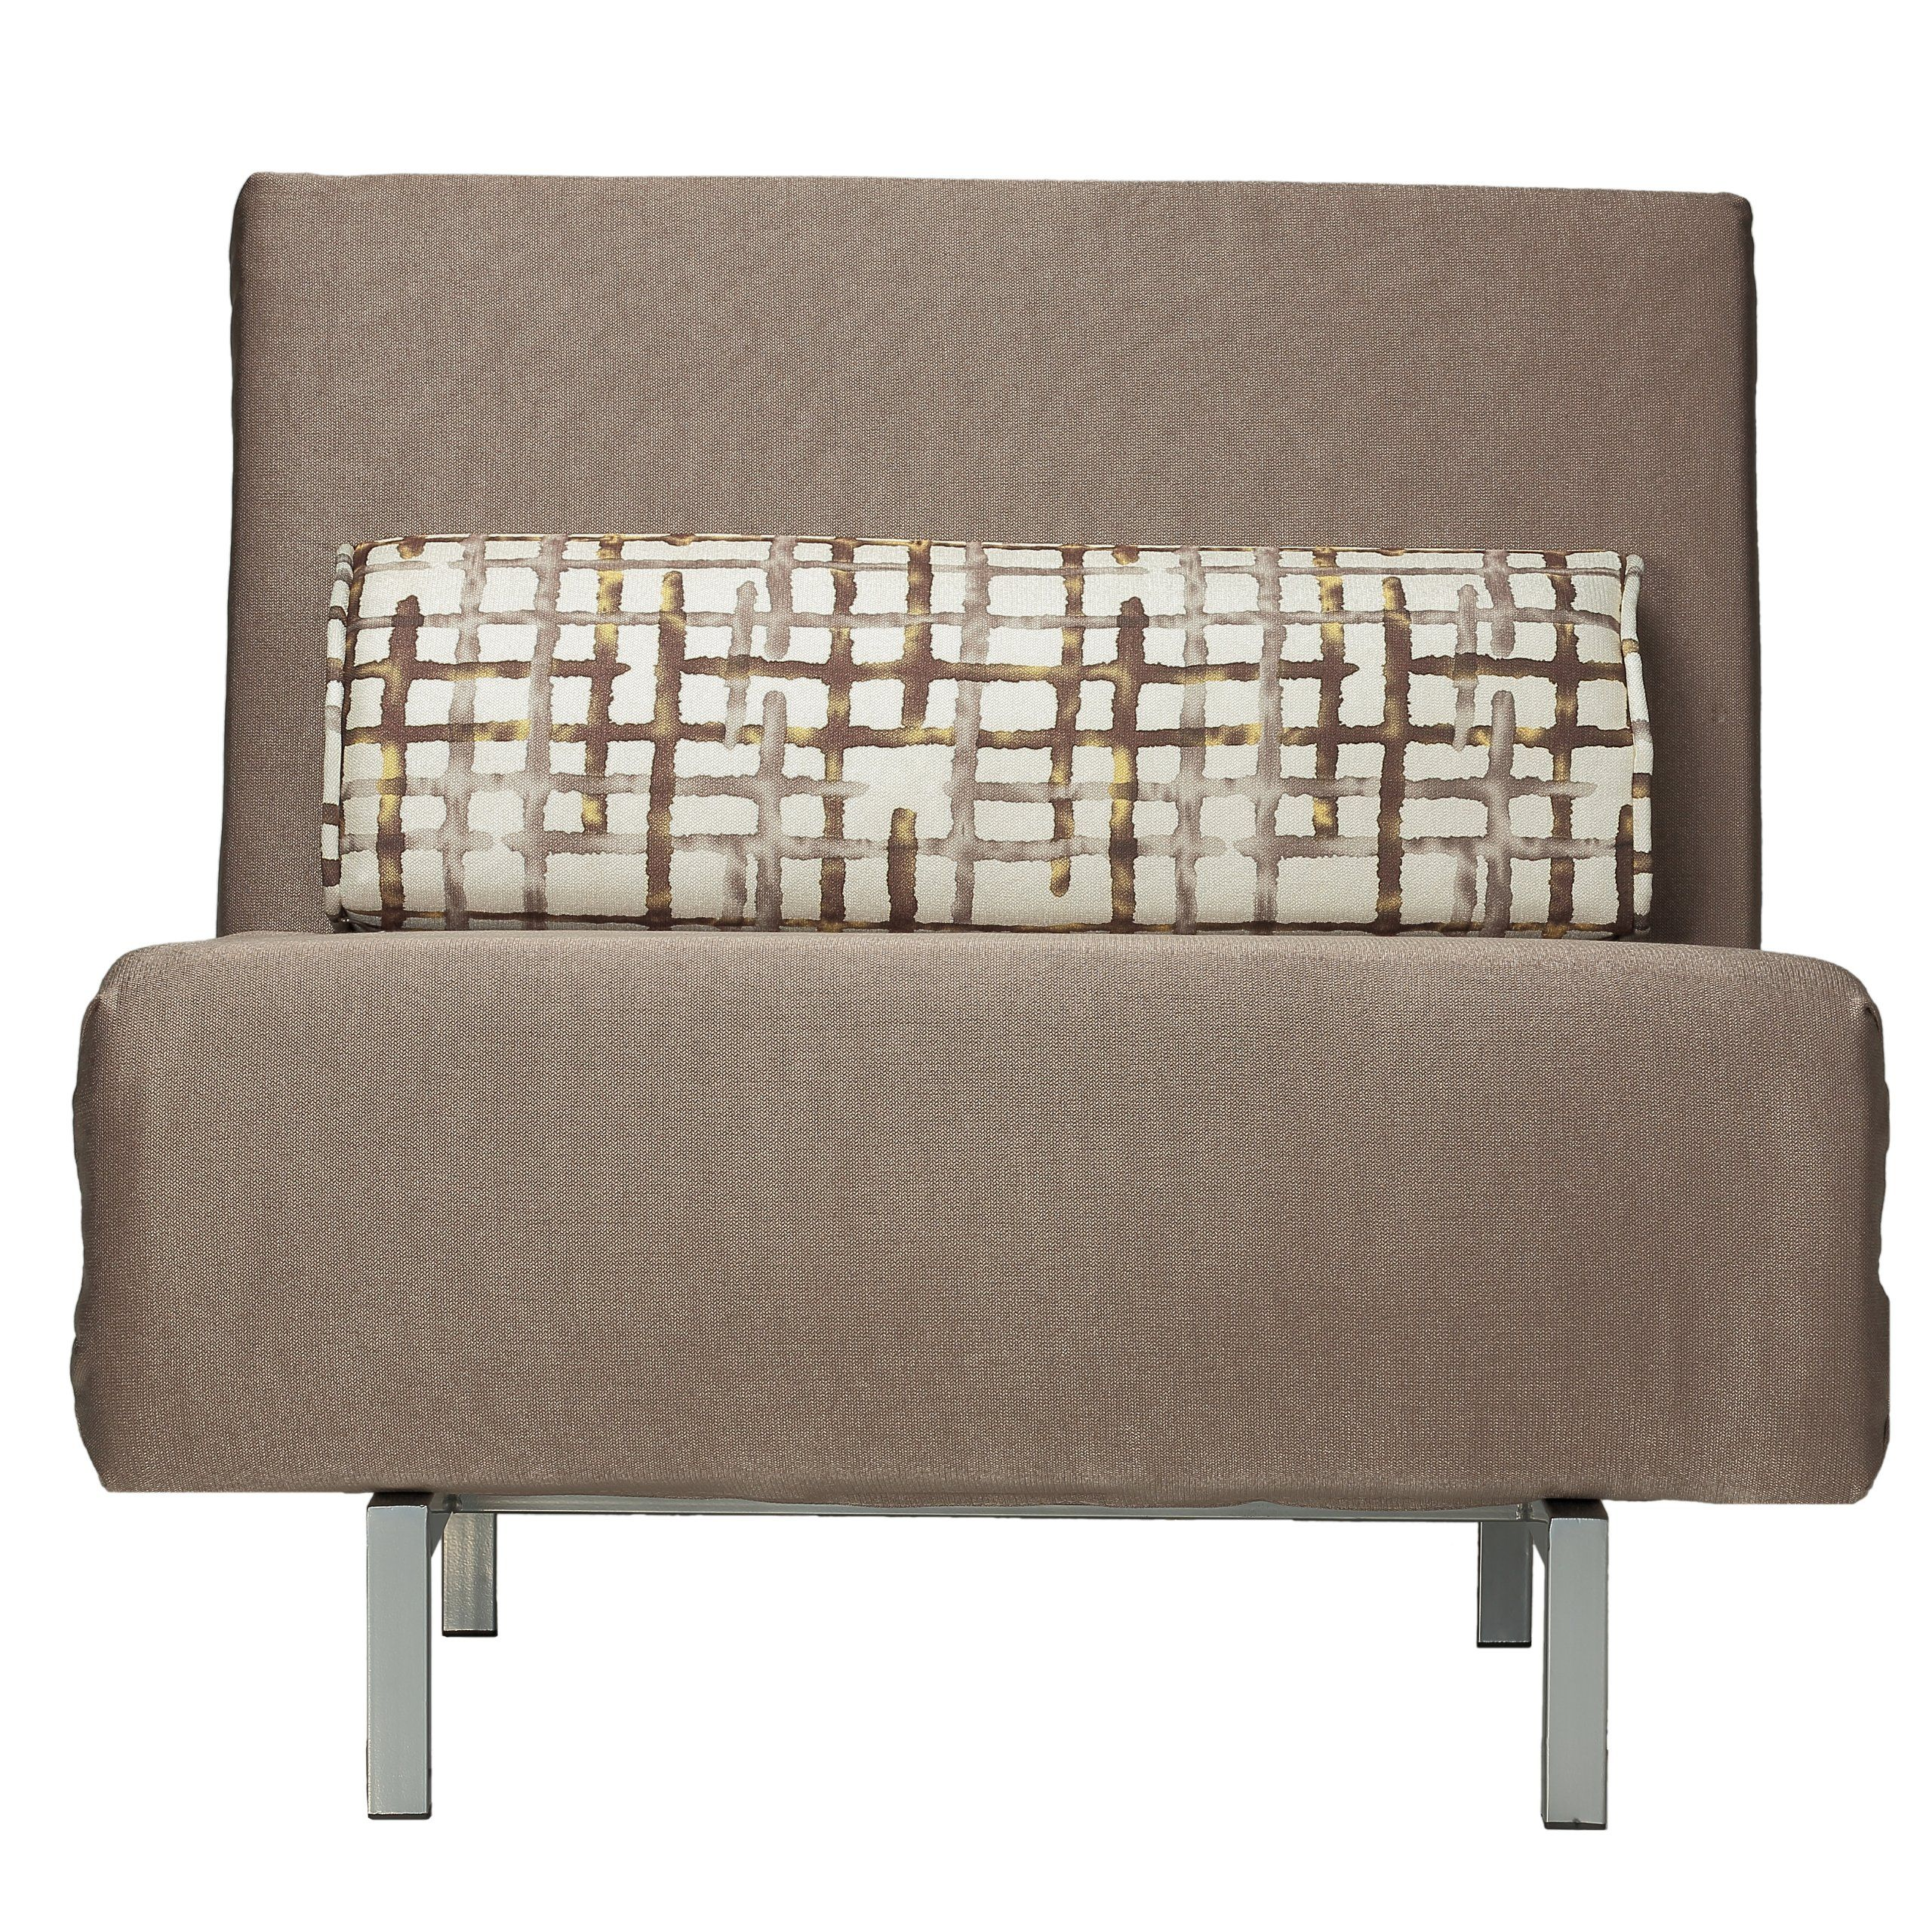 Fabulous Cortesi Home Savion Convertible Accent Chairbed Taupe Dailytribune Chair Design For Home Dailytribuneorg